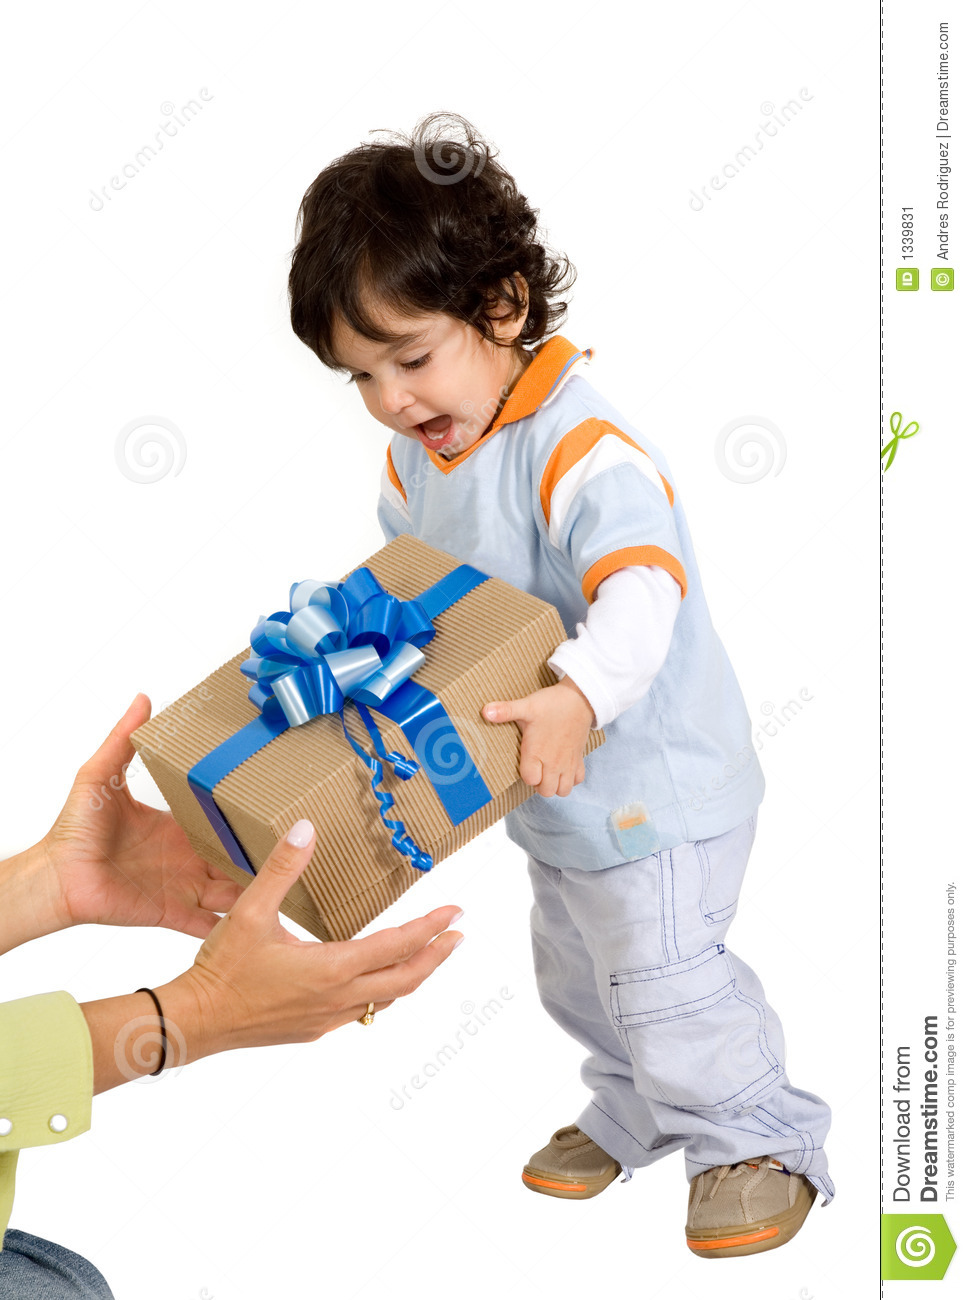 Child Receiving A Gift Stock Image - Image: 1339831